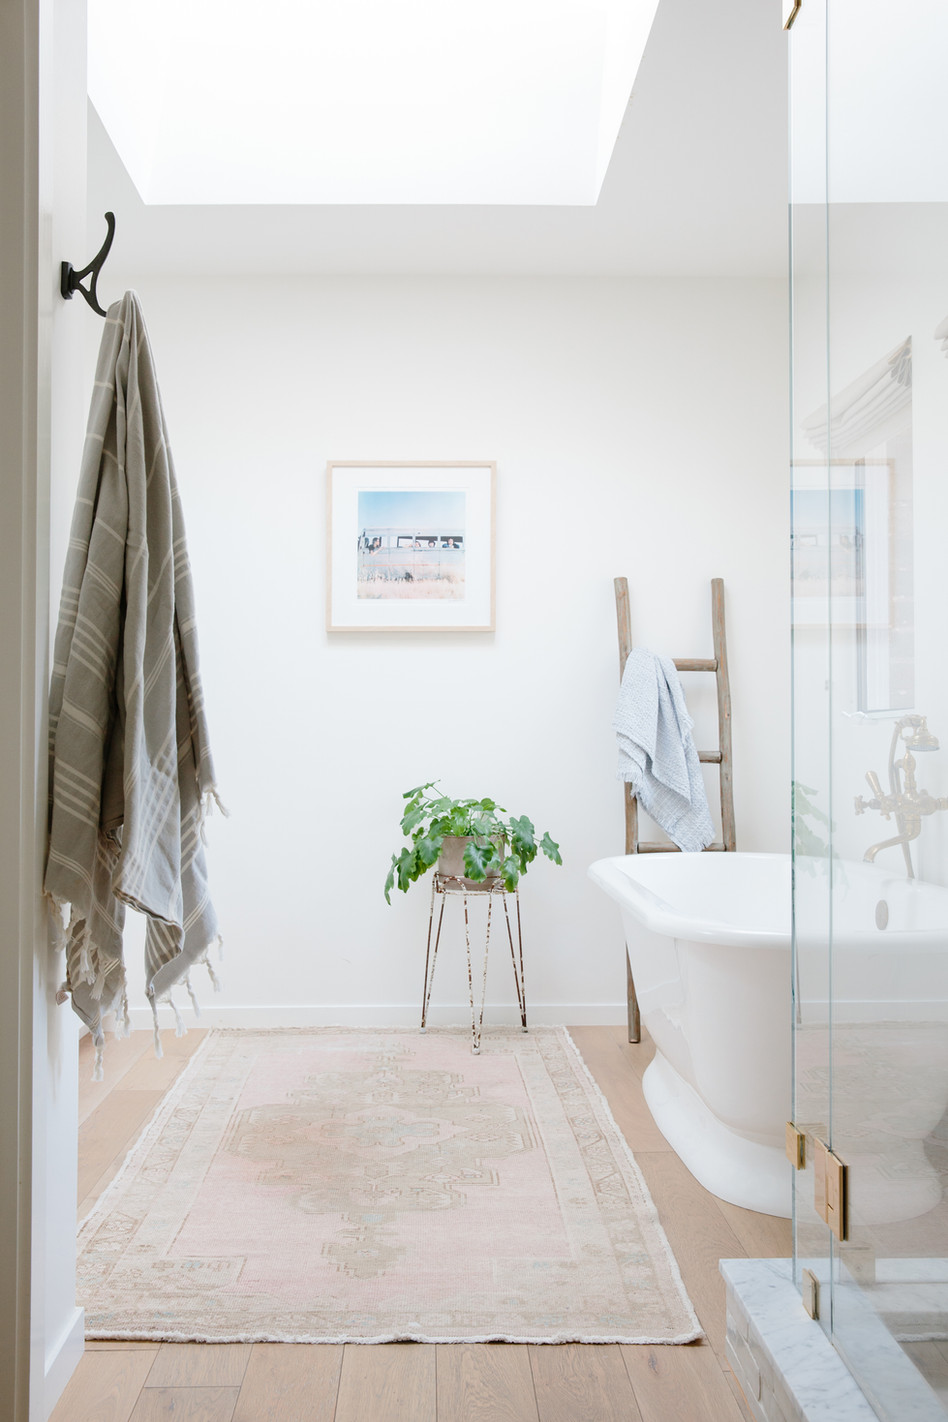 California casual master bathroom, soaking tub, brass fixtures, vintage rug, by Lilly Walton Design in Ojai, Ca